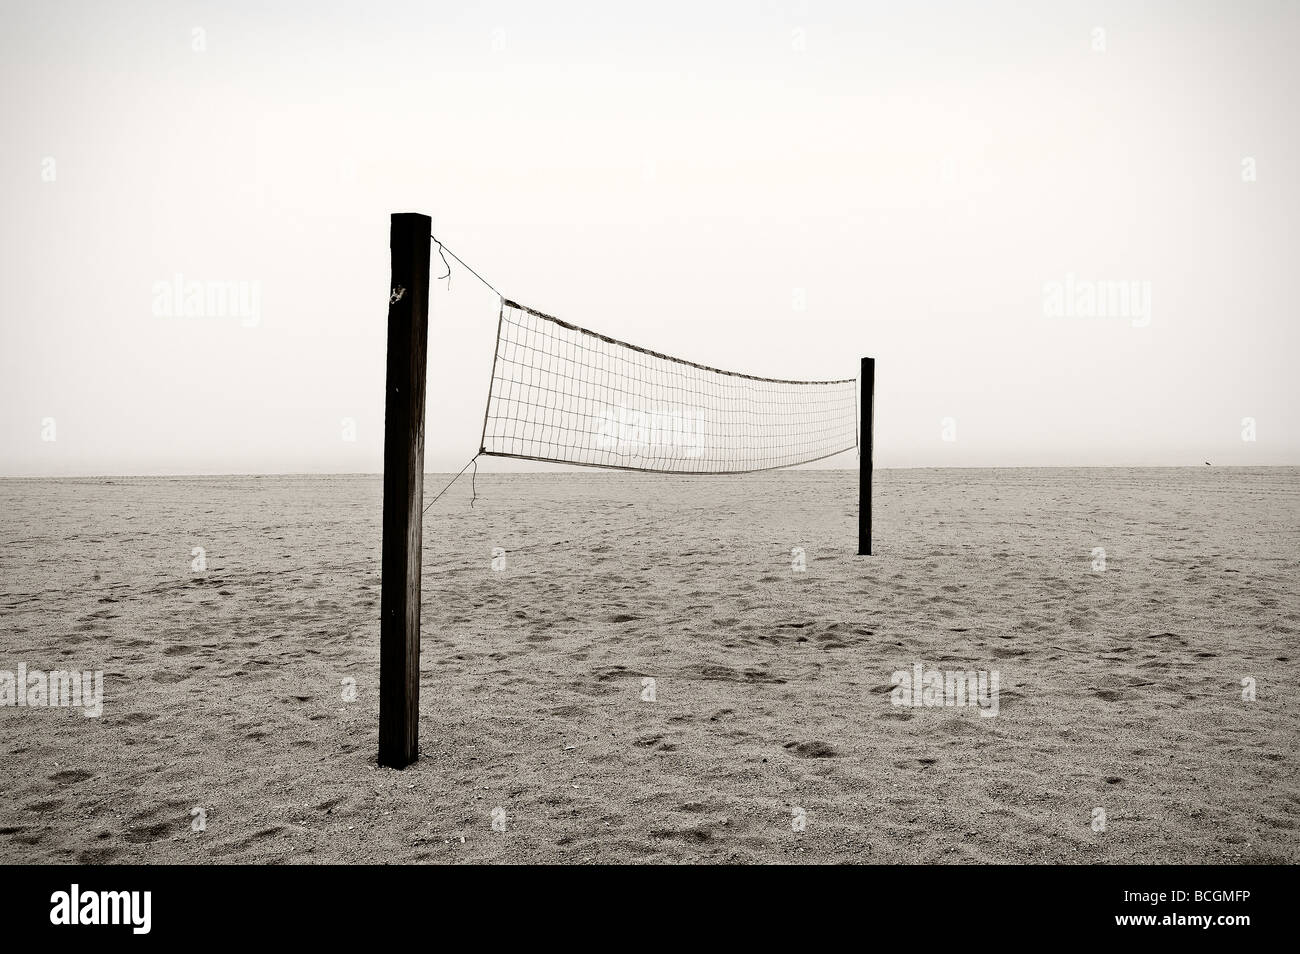 Beach volleyball net - Stock Image